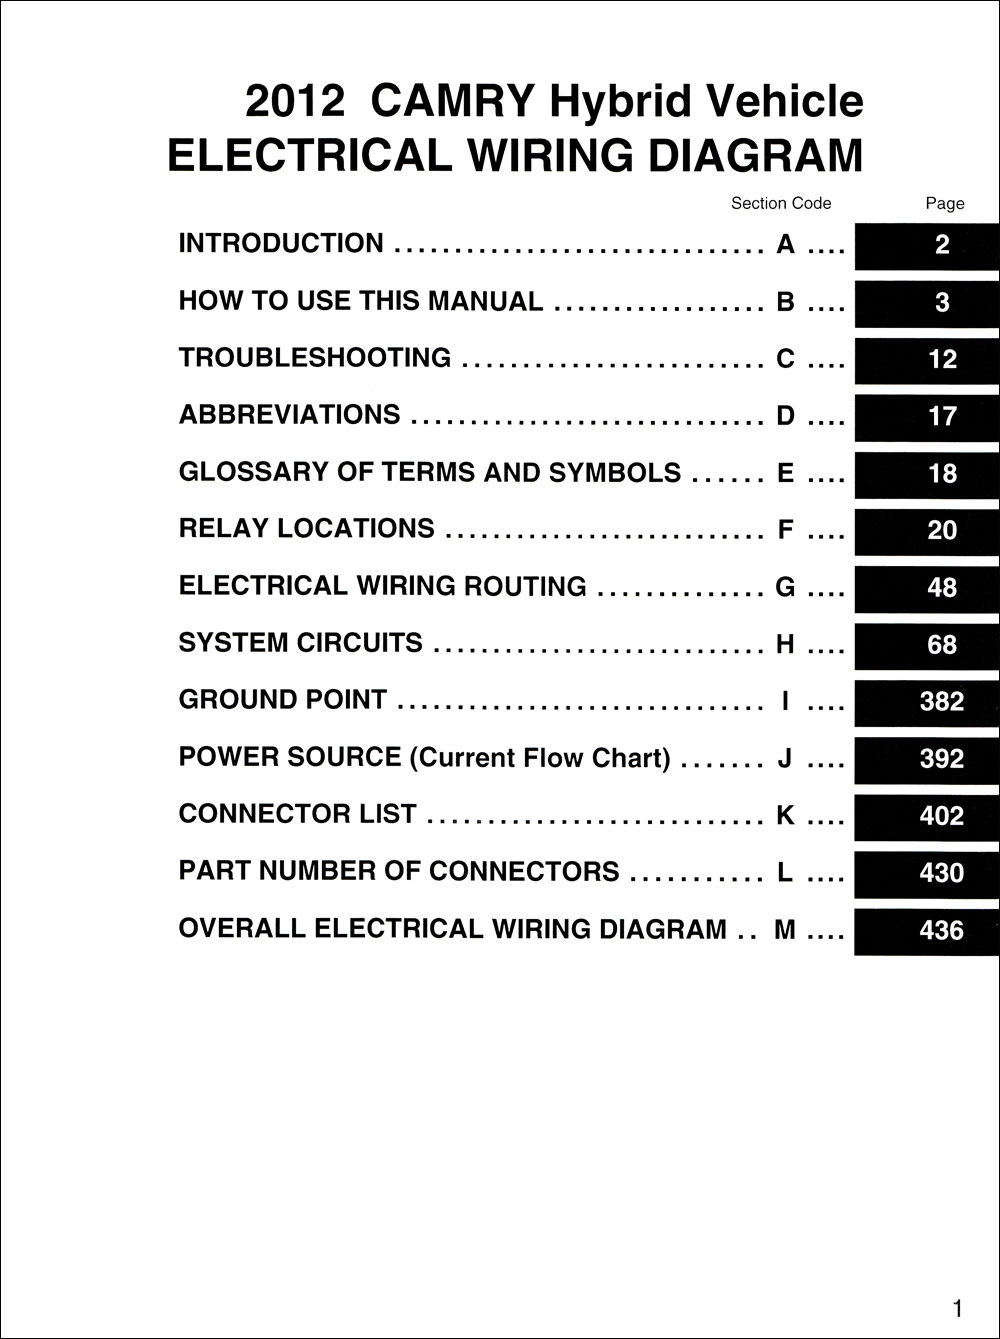 2002 Toyota Camry Wiring Diagram Charging Data Wiring Diagrams \u2022 2012  Toyota Camry Iat 2012 Toyota Camry Wiring Diagrams Lighting